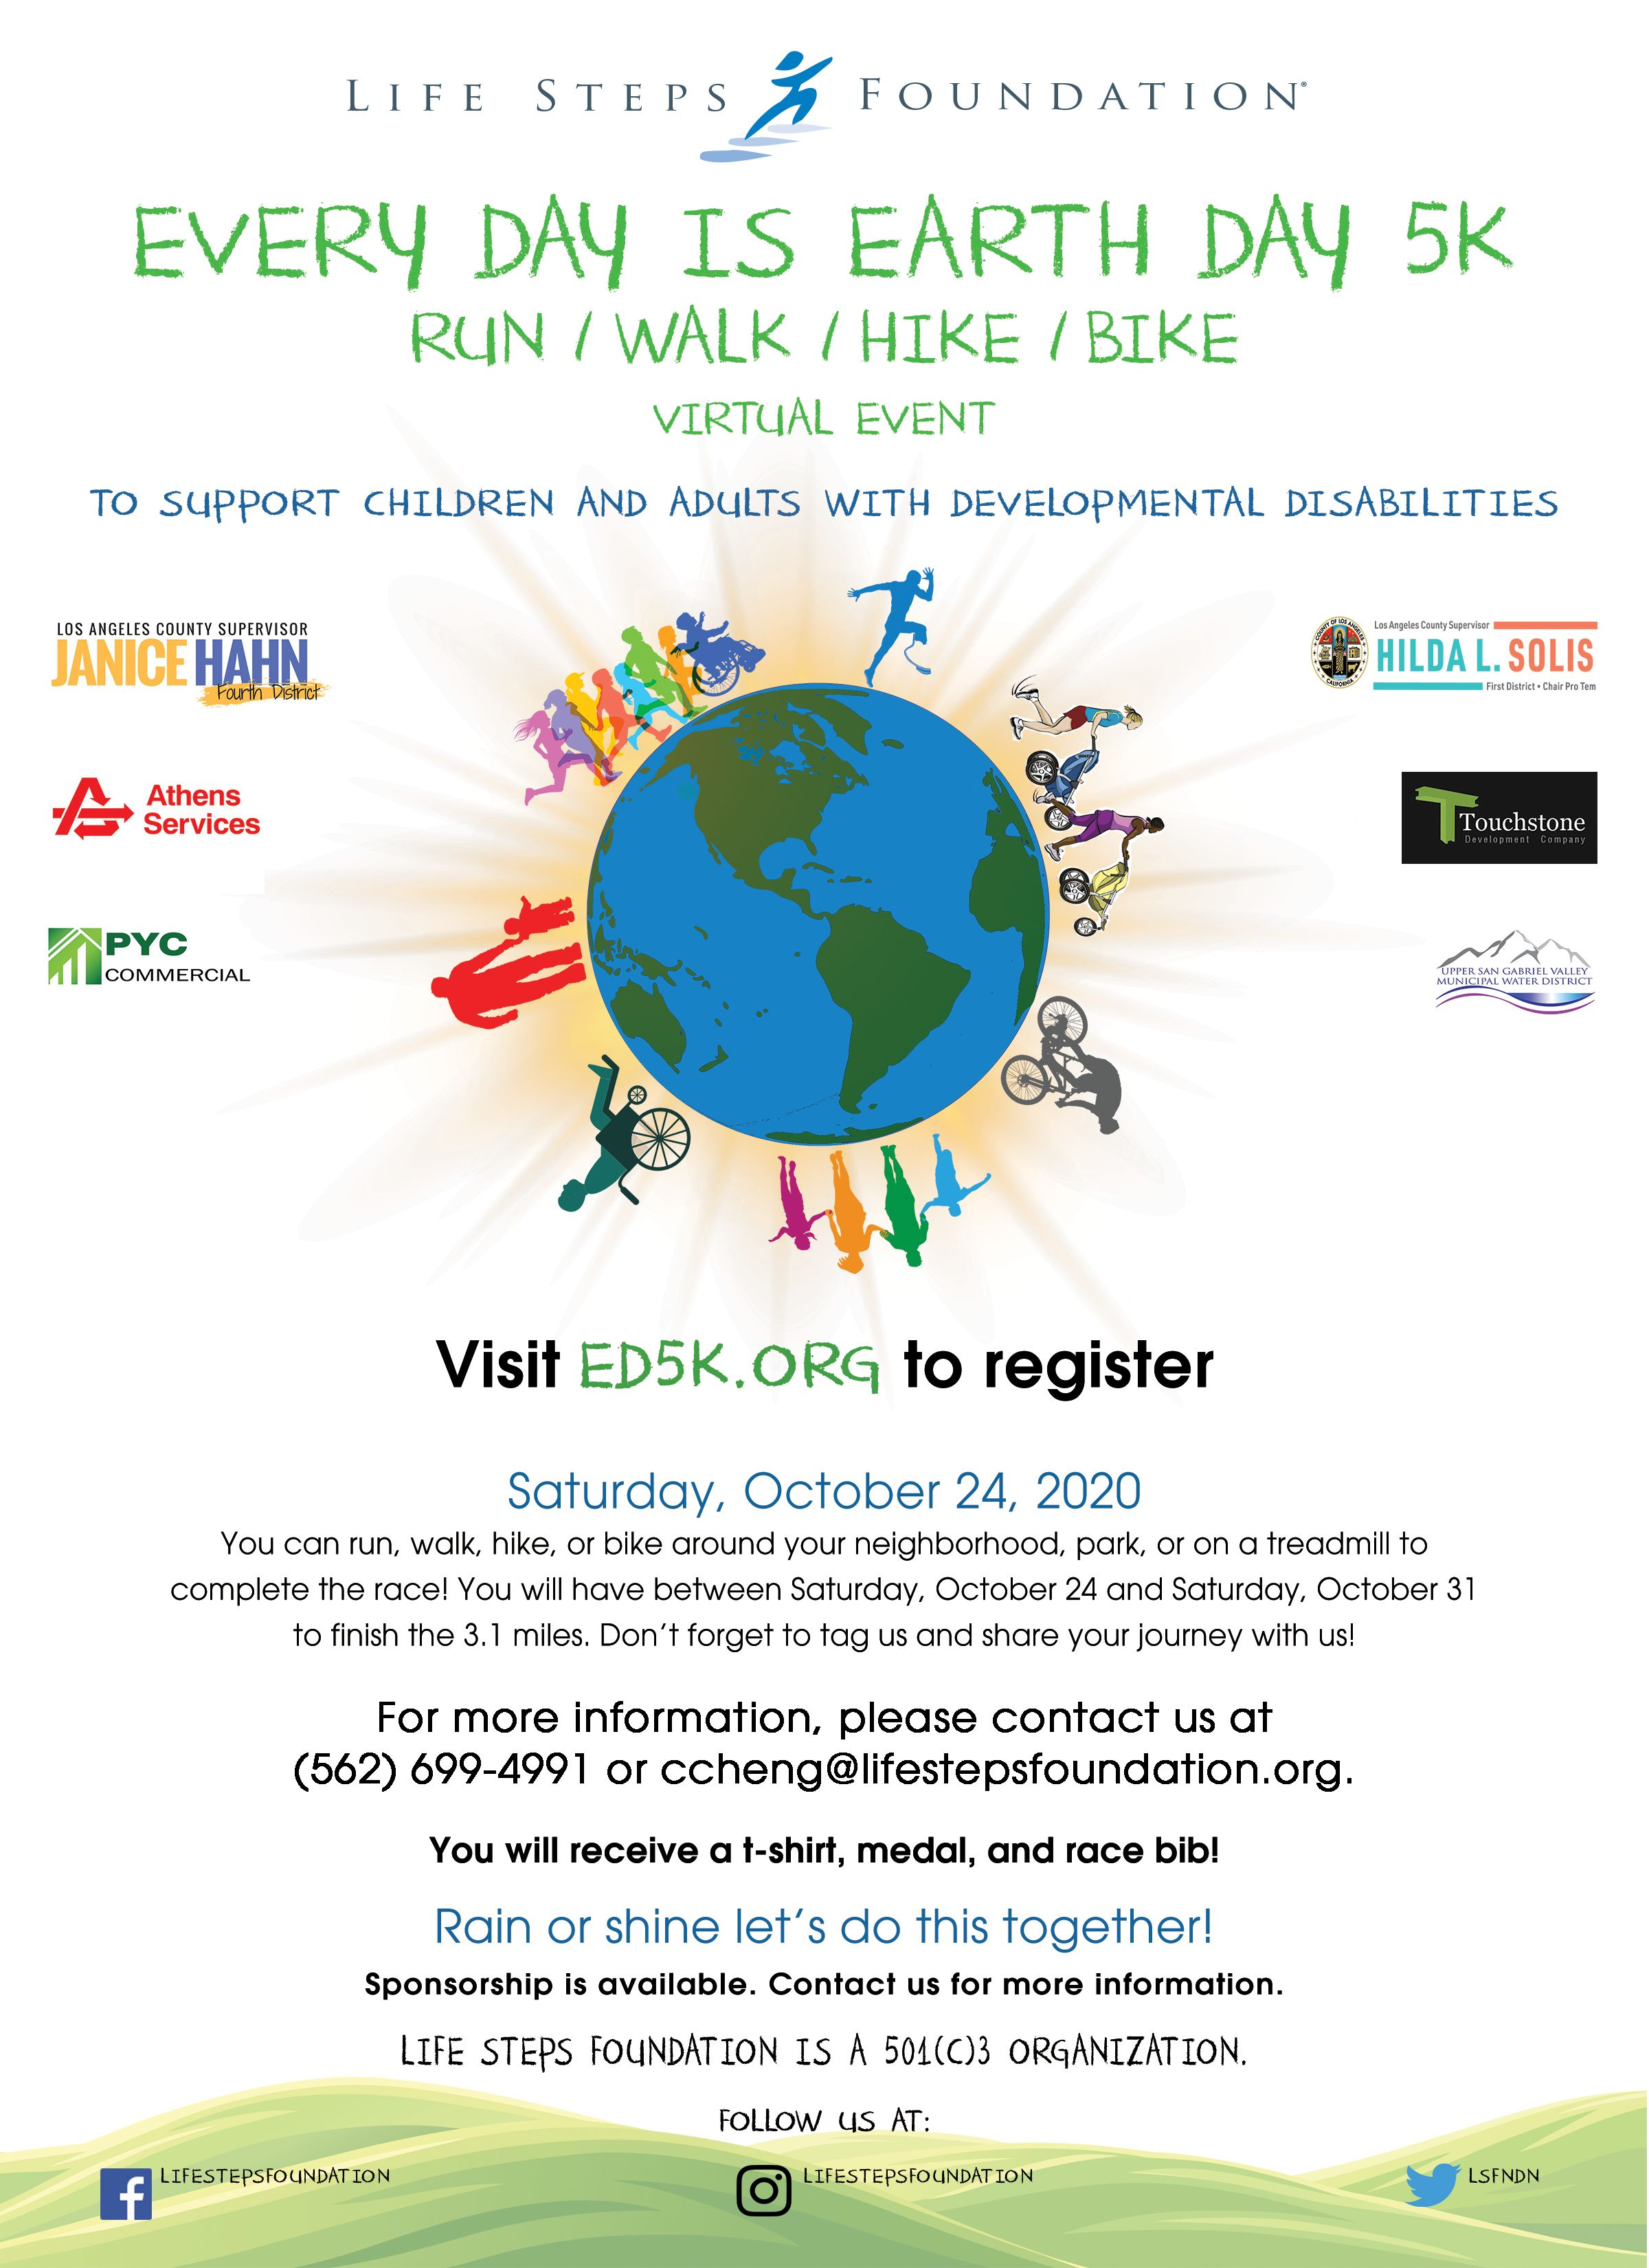 Every Day is Earth Day 5k 2020 (Virtual)